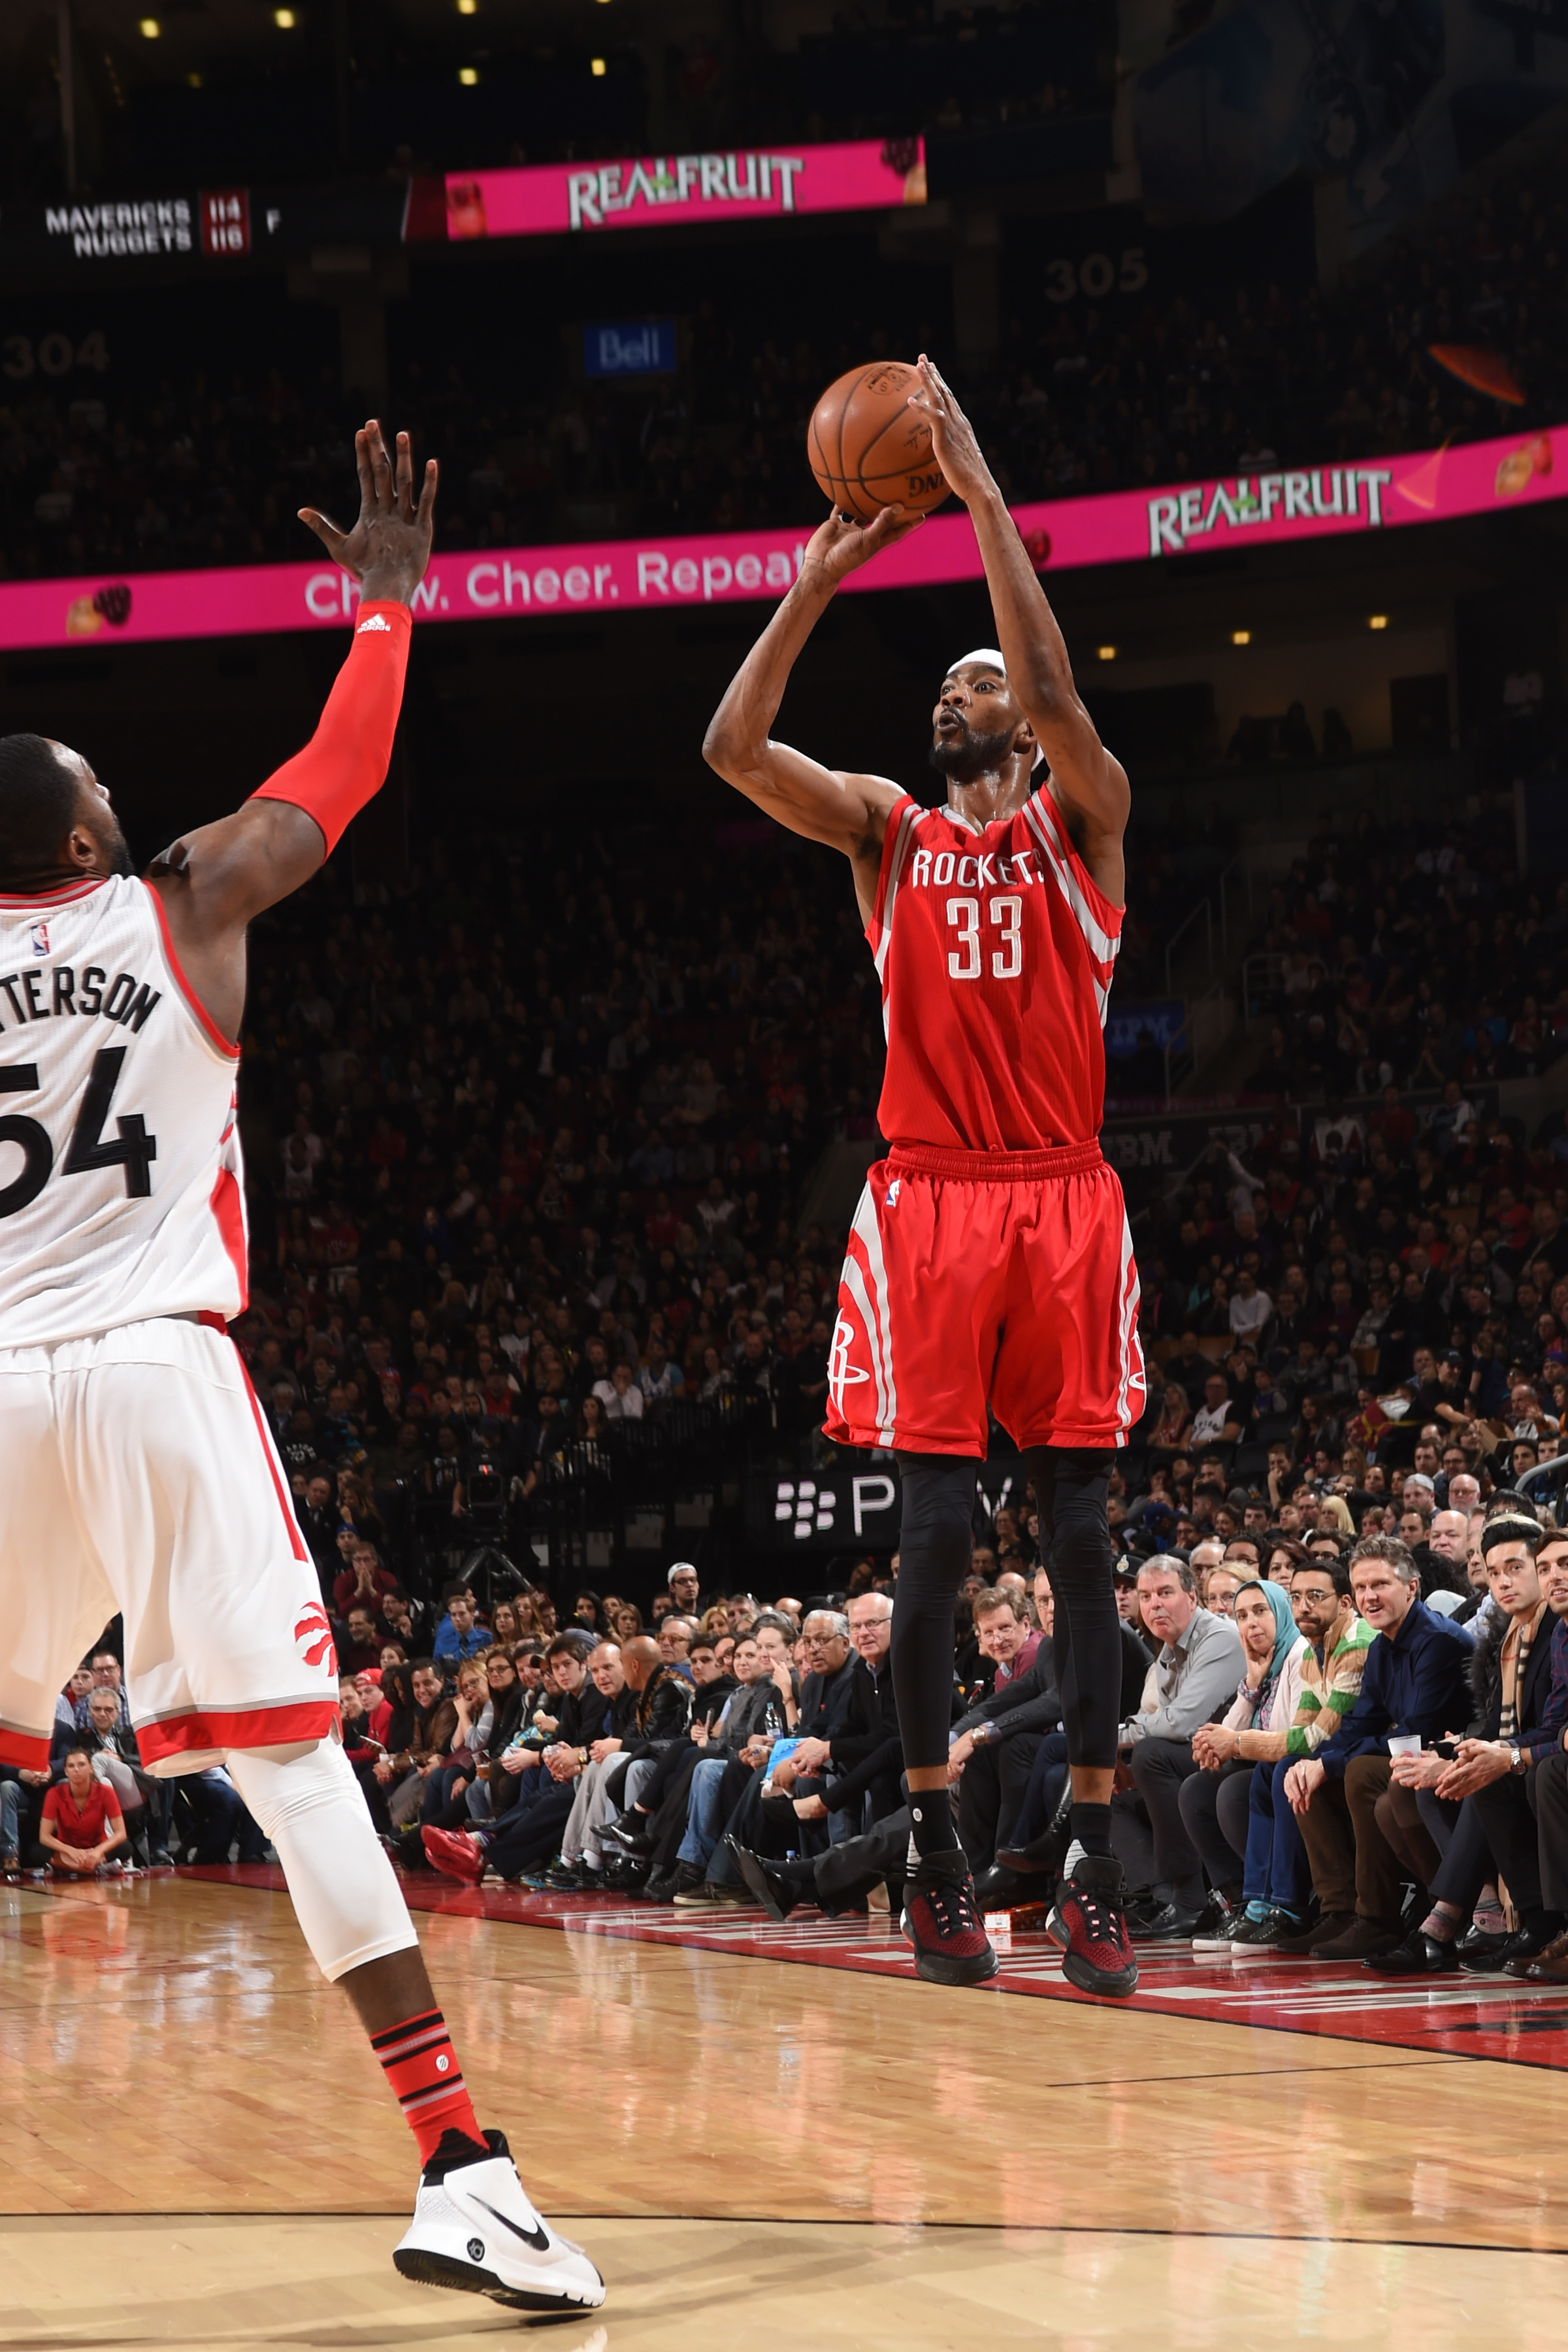 TORONTO, CANADA - MARCH 6: Corey Brewer #33 of the Houston Rockets shoots the ball against the Toronto Raptors on March 6, 2016 at the Air Canada Centre in Toronto, Ontario, Canada.  (Photo by Ron Turenne/NBAE via Getty Images)